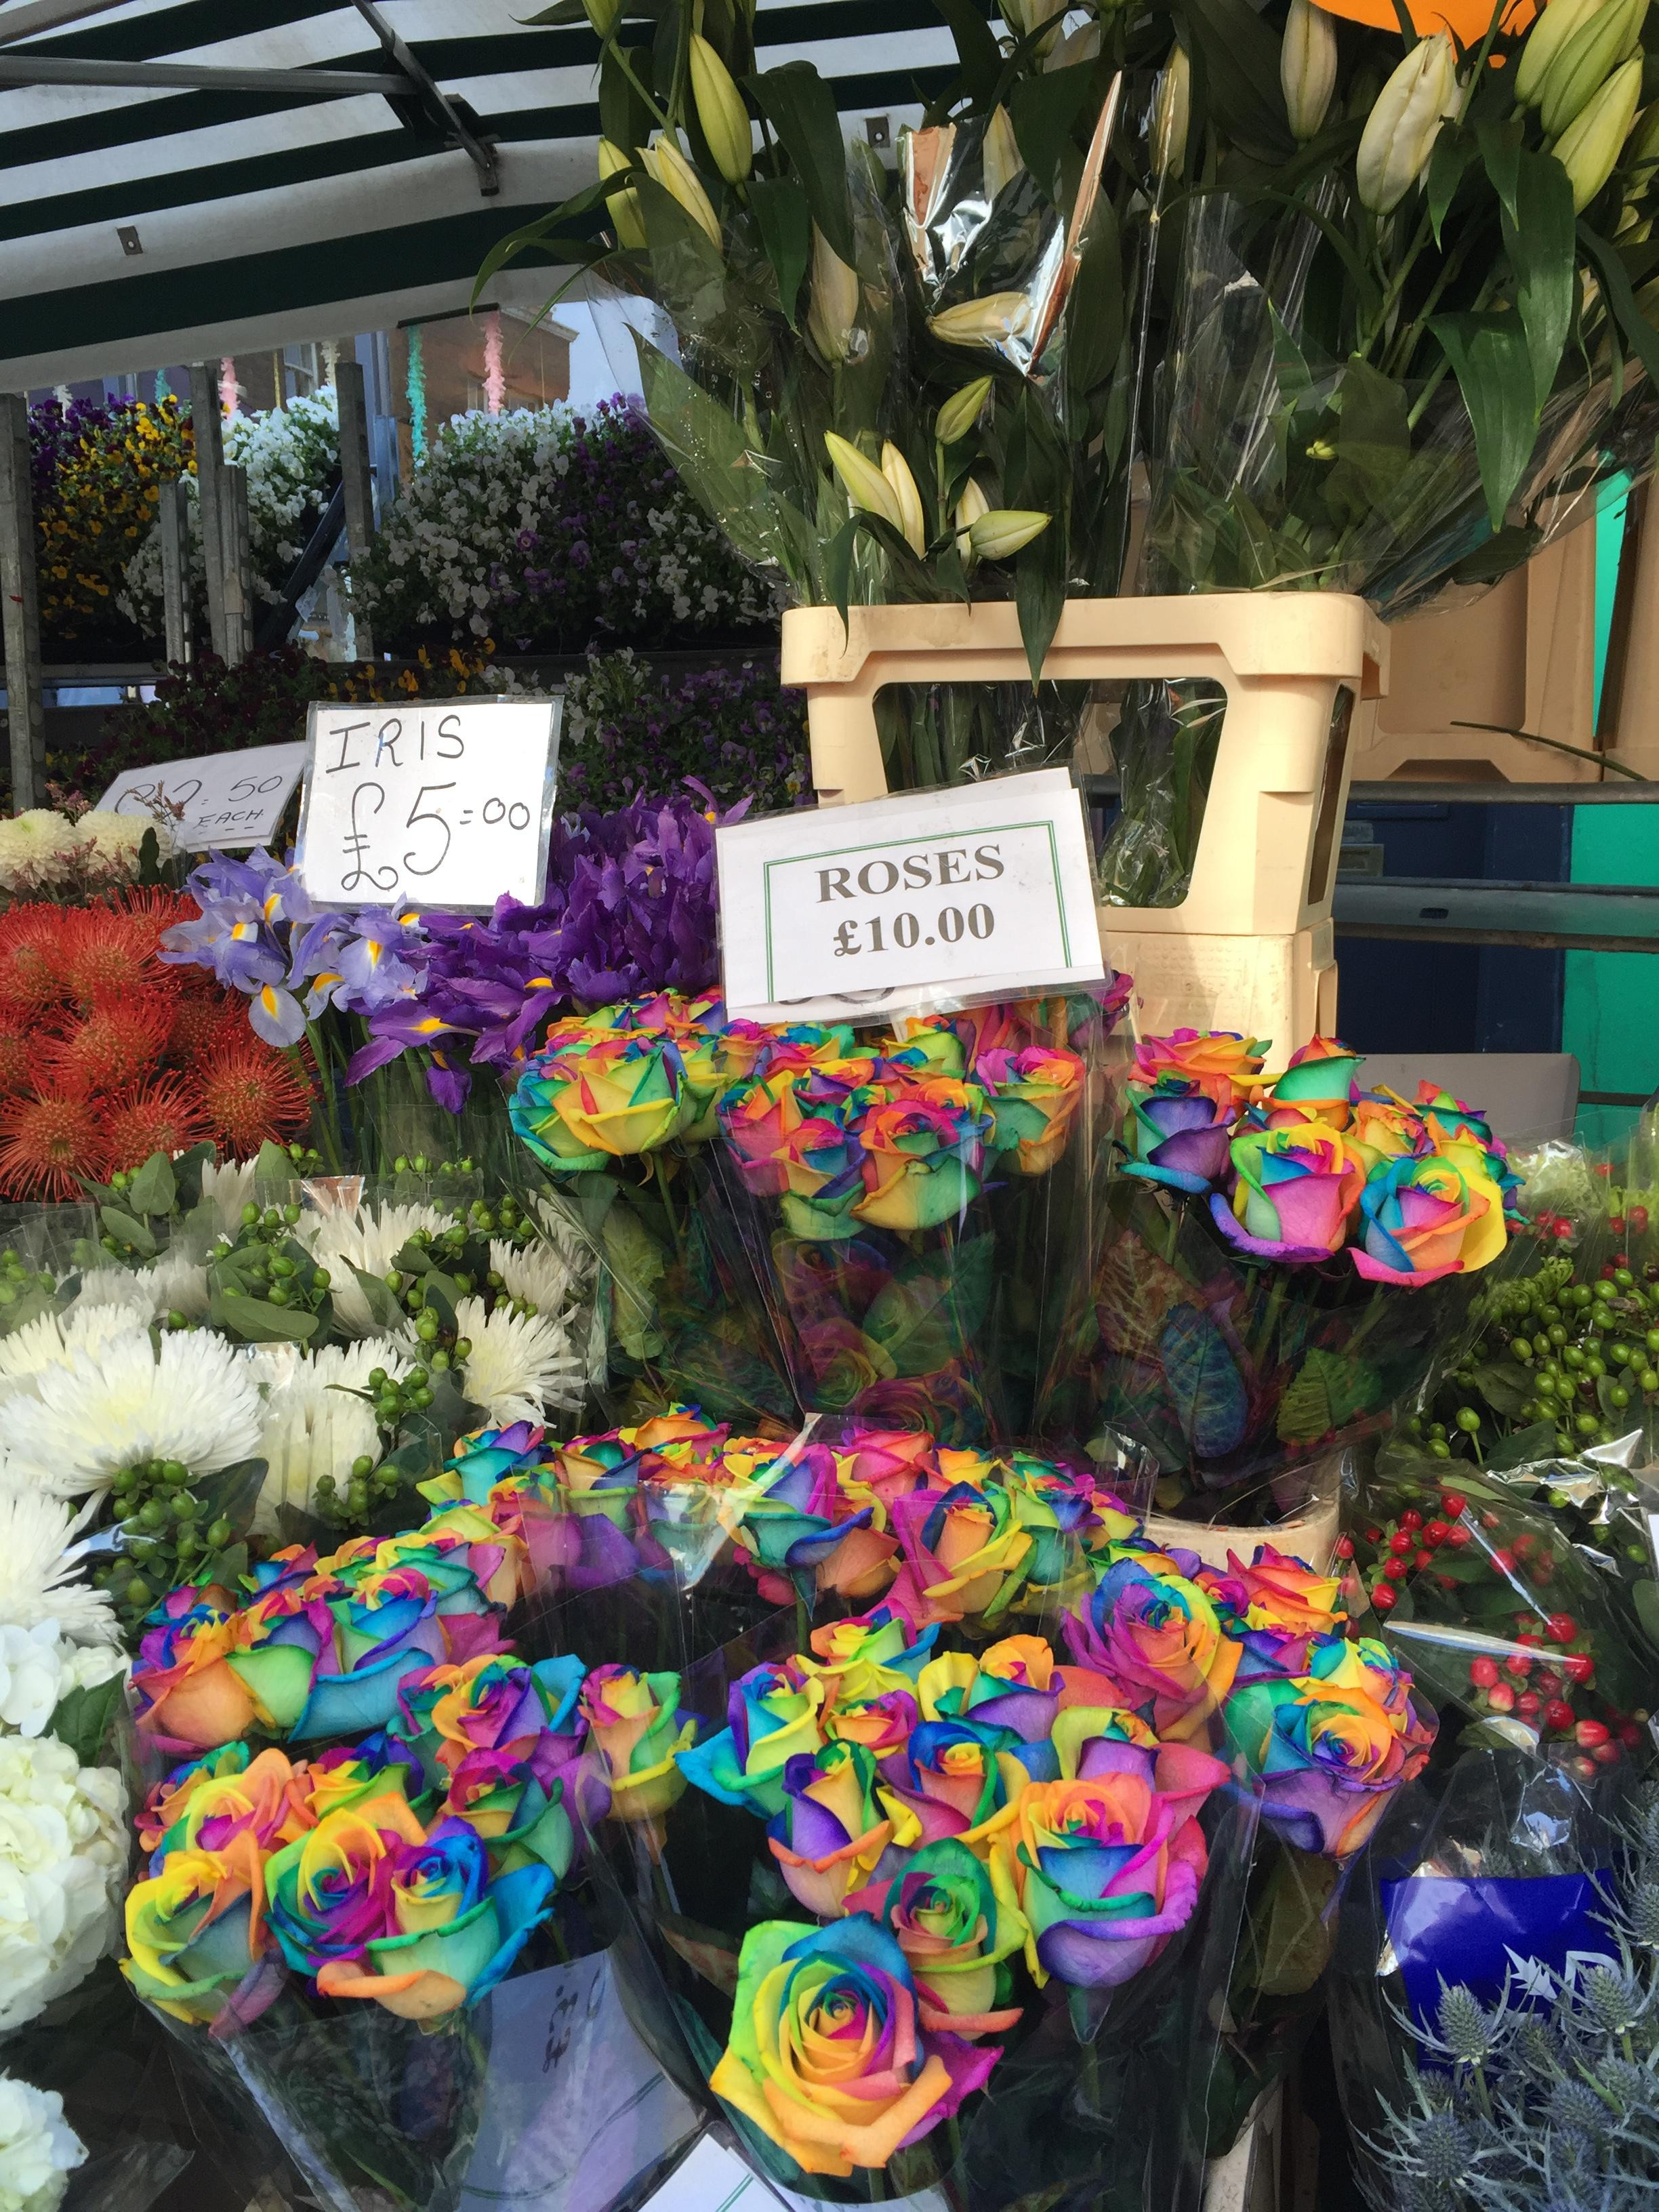 silk flowers in vases uk of columbia road flower market guide tips for buying flowers at intended for monmouth coffee is sandwiched between two shops with just a hatch for service and i love sitting on the curb just listening to live music